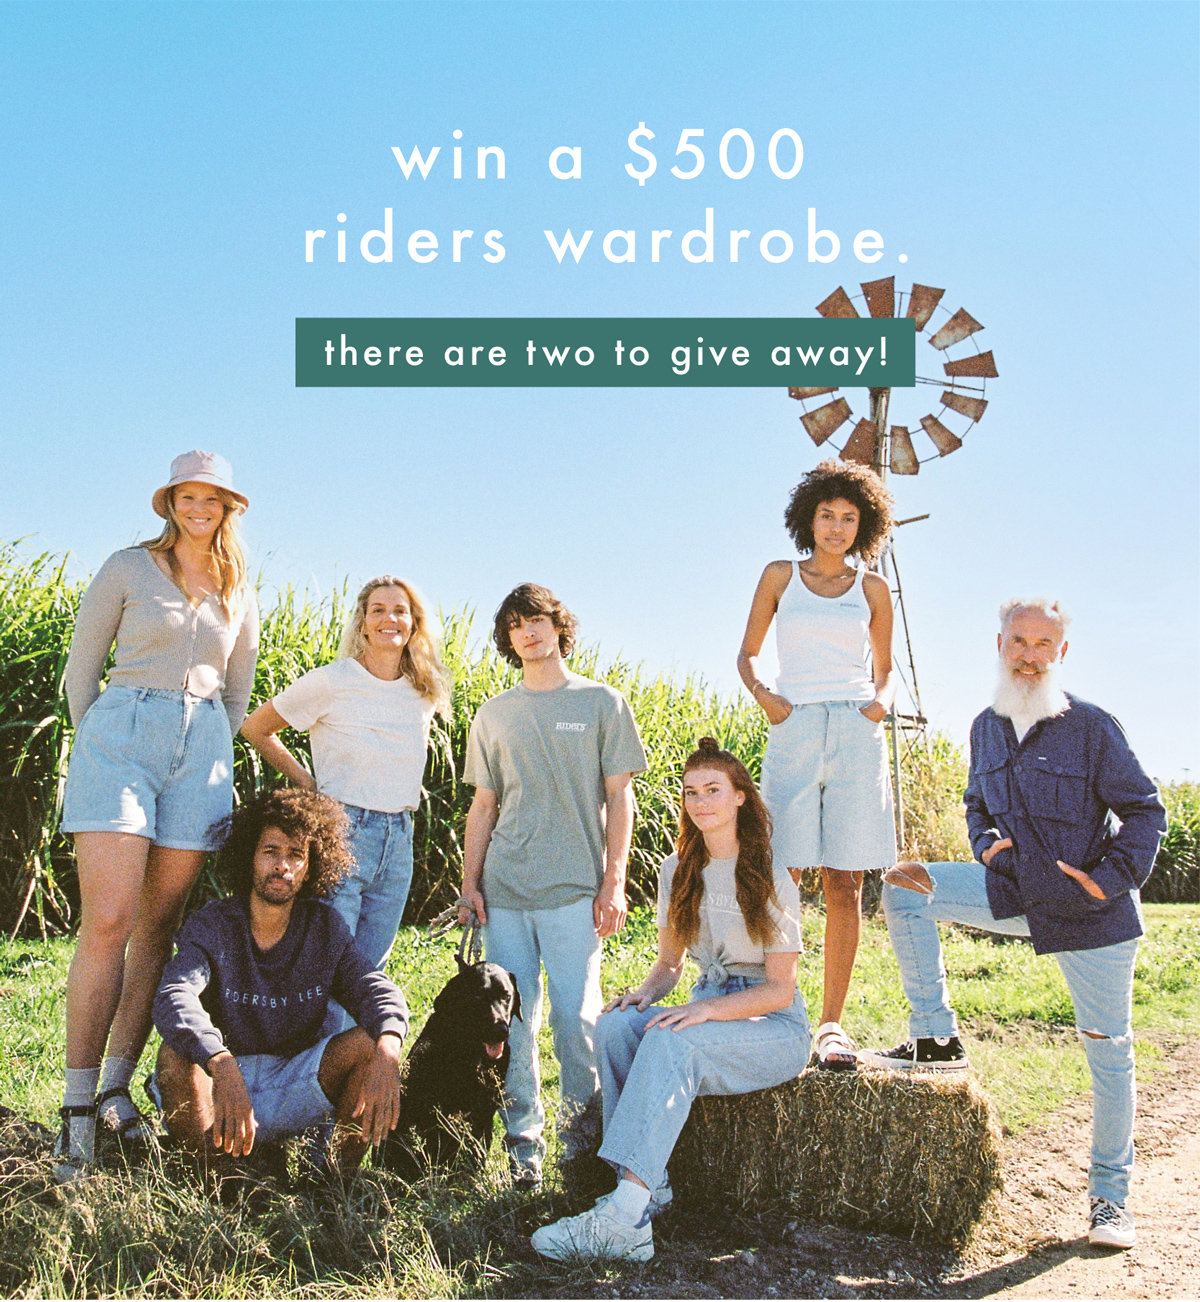 WIN A $500 RIDERS WARDROBE. THERE ARE TWO TO GIVE AWAY!